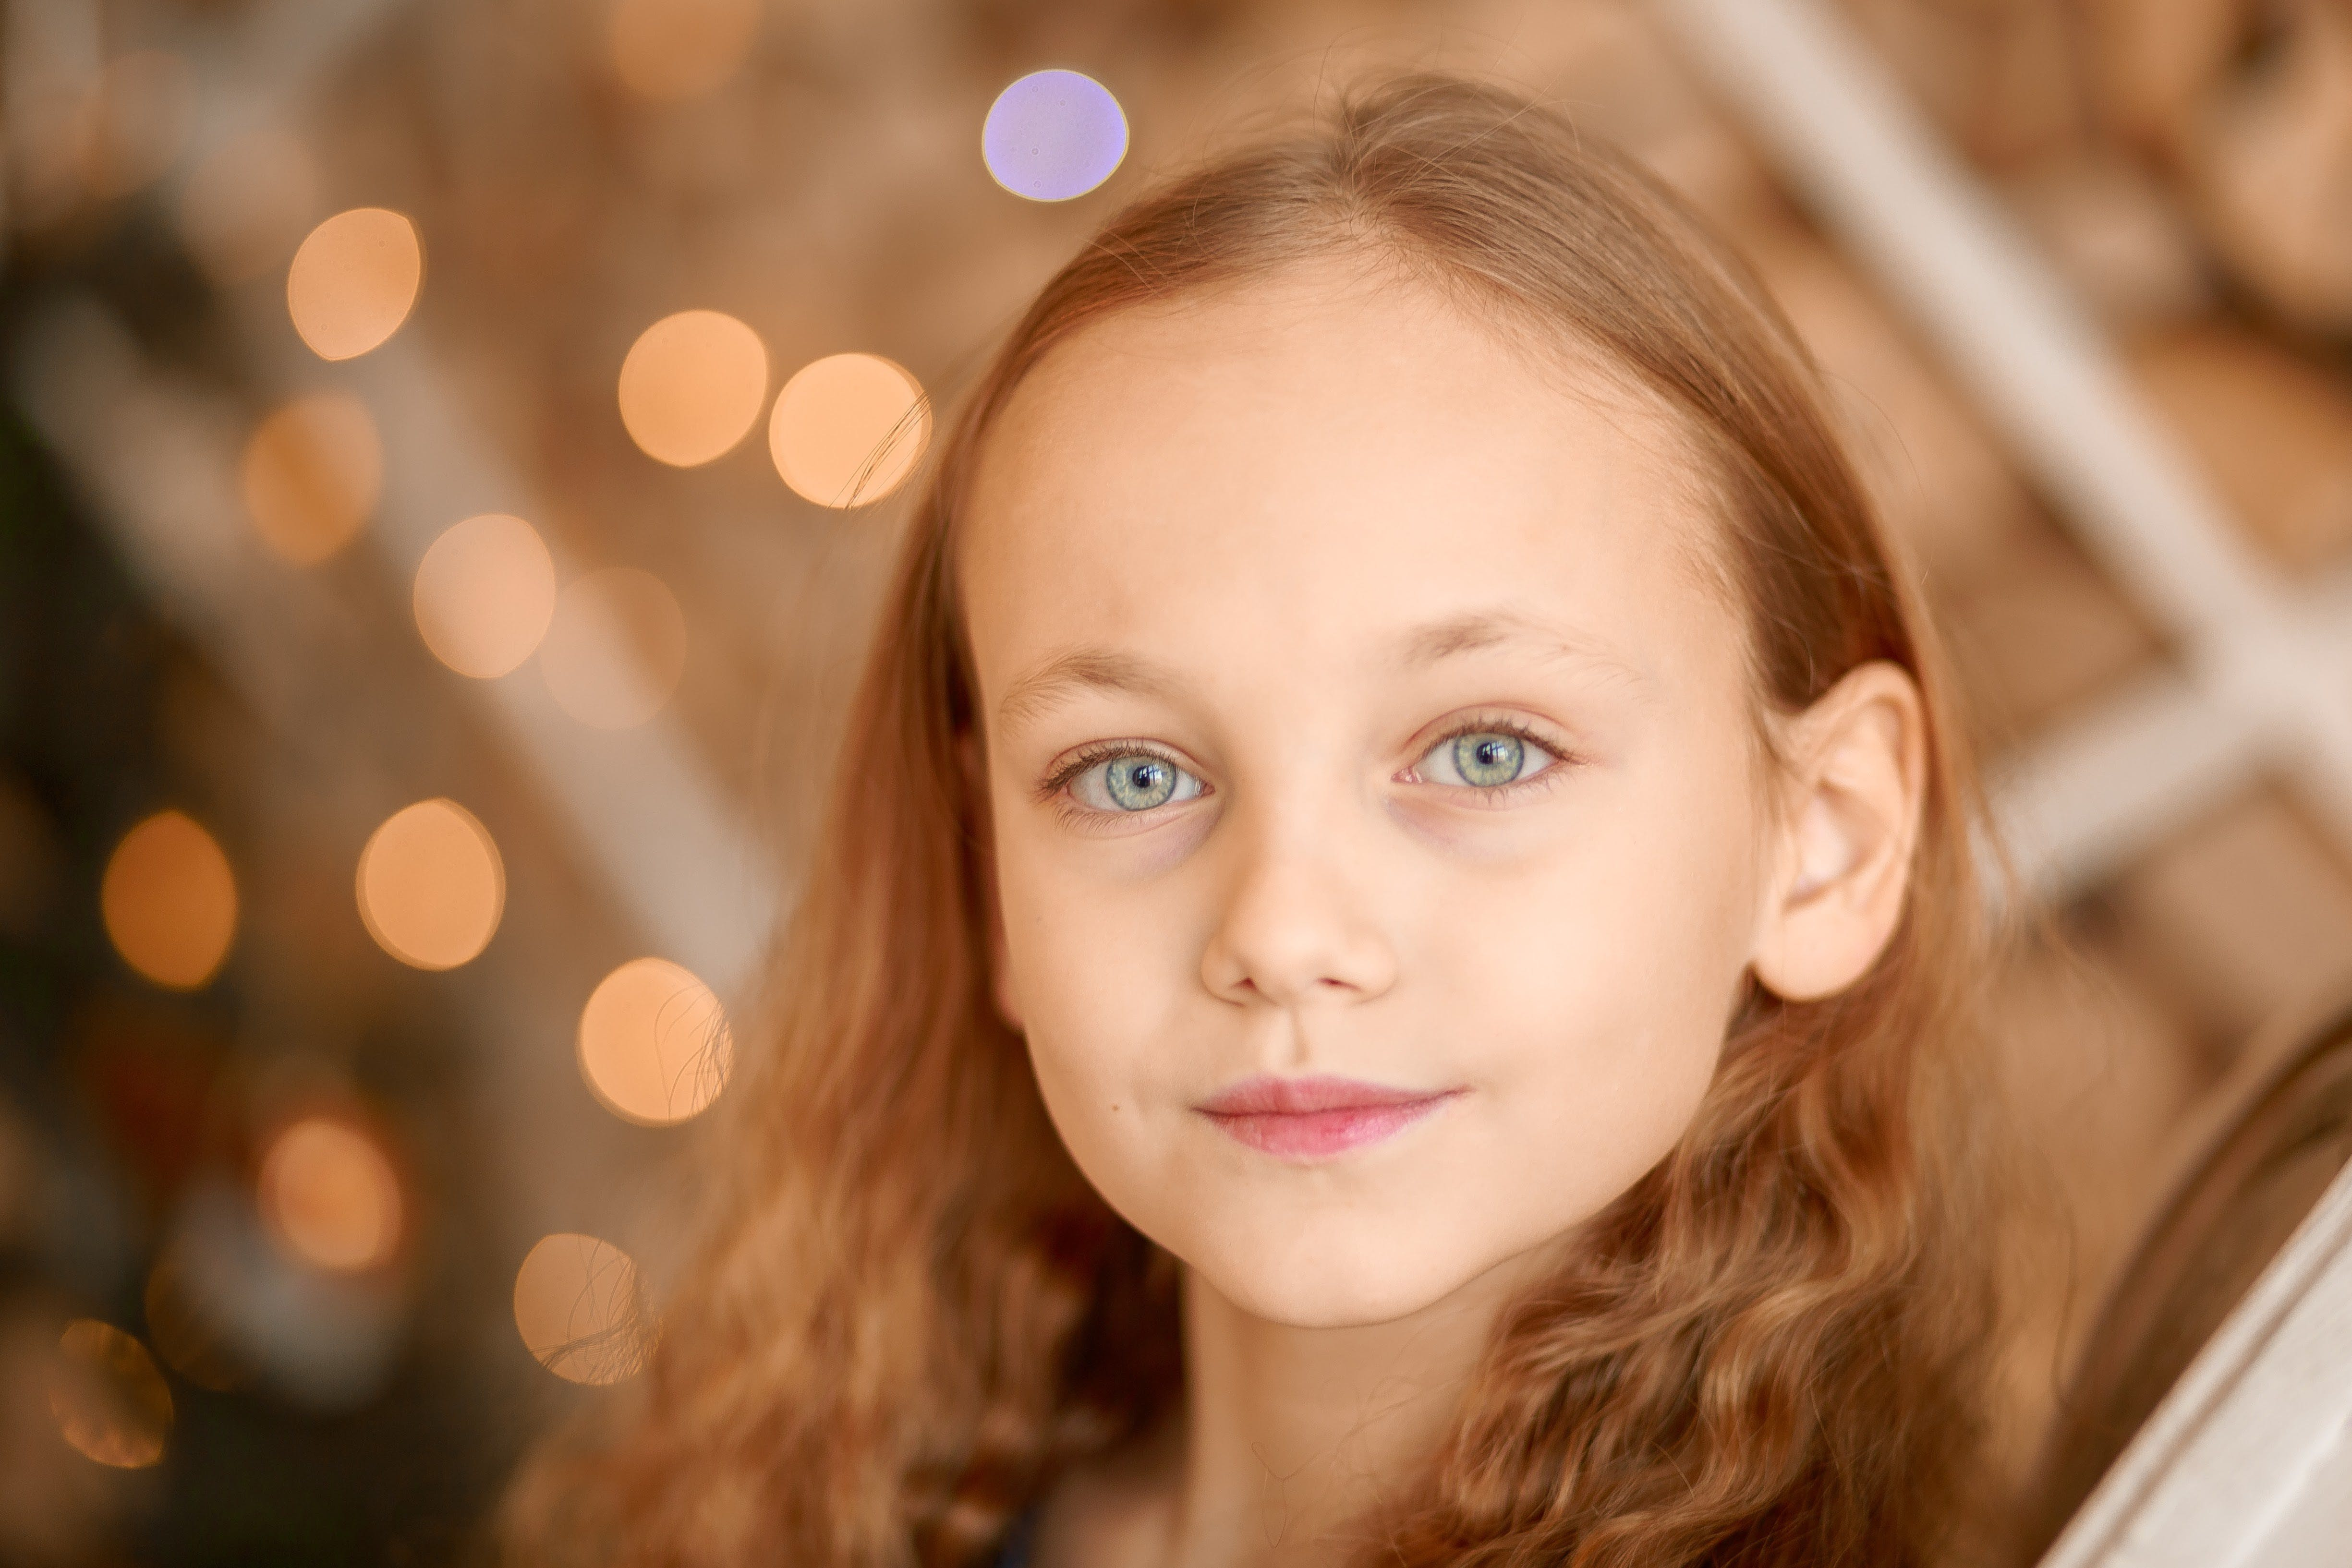 Selective Focus Photography of Girl